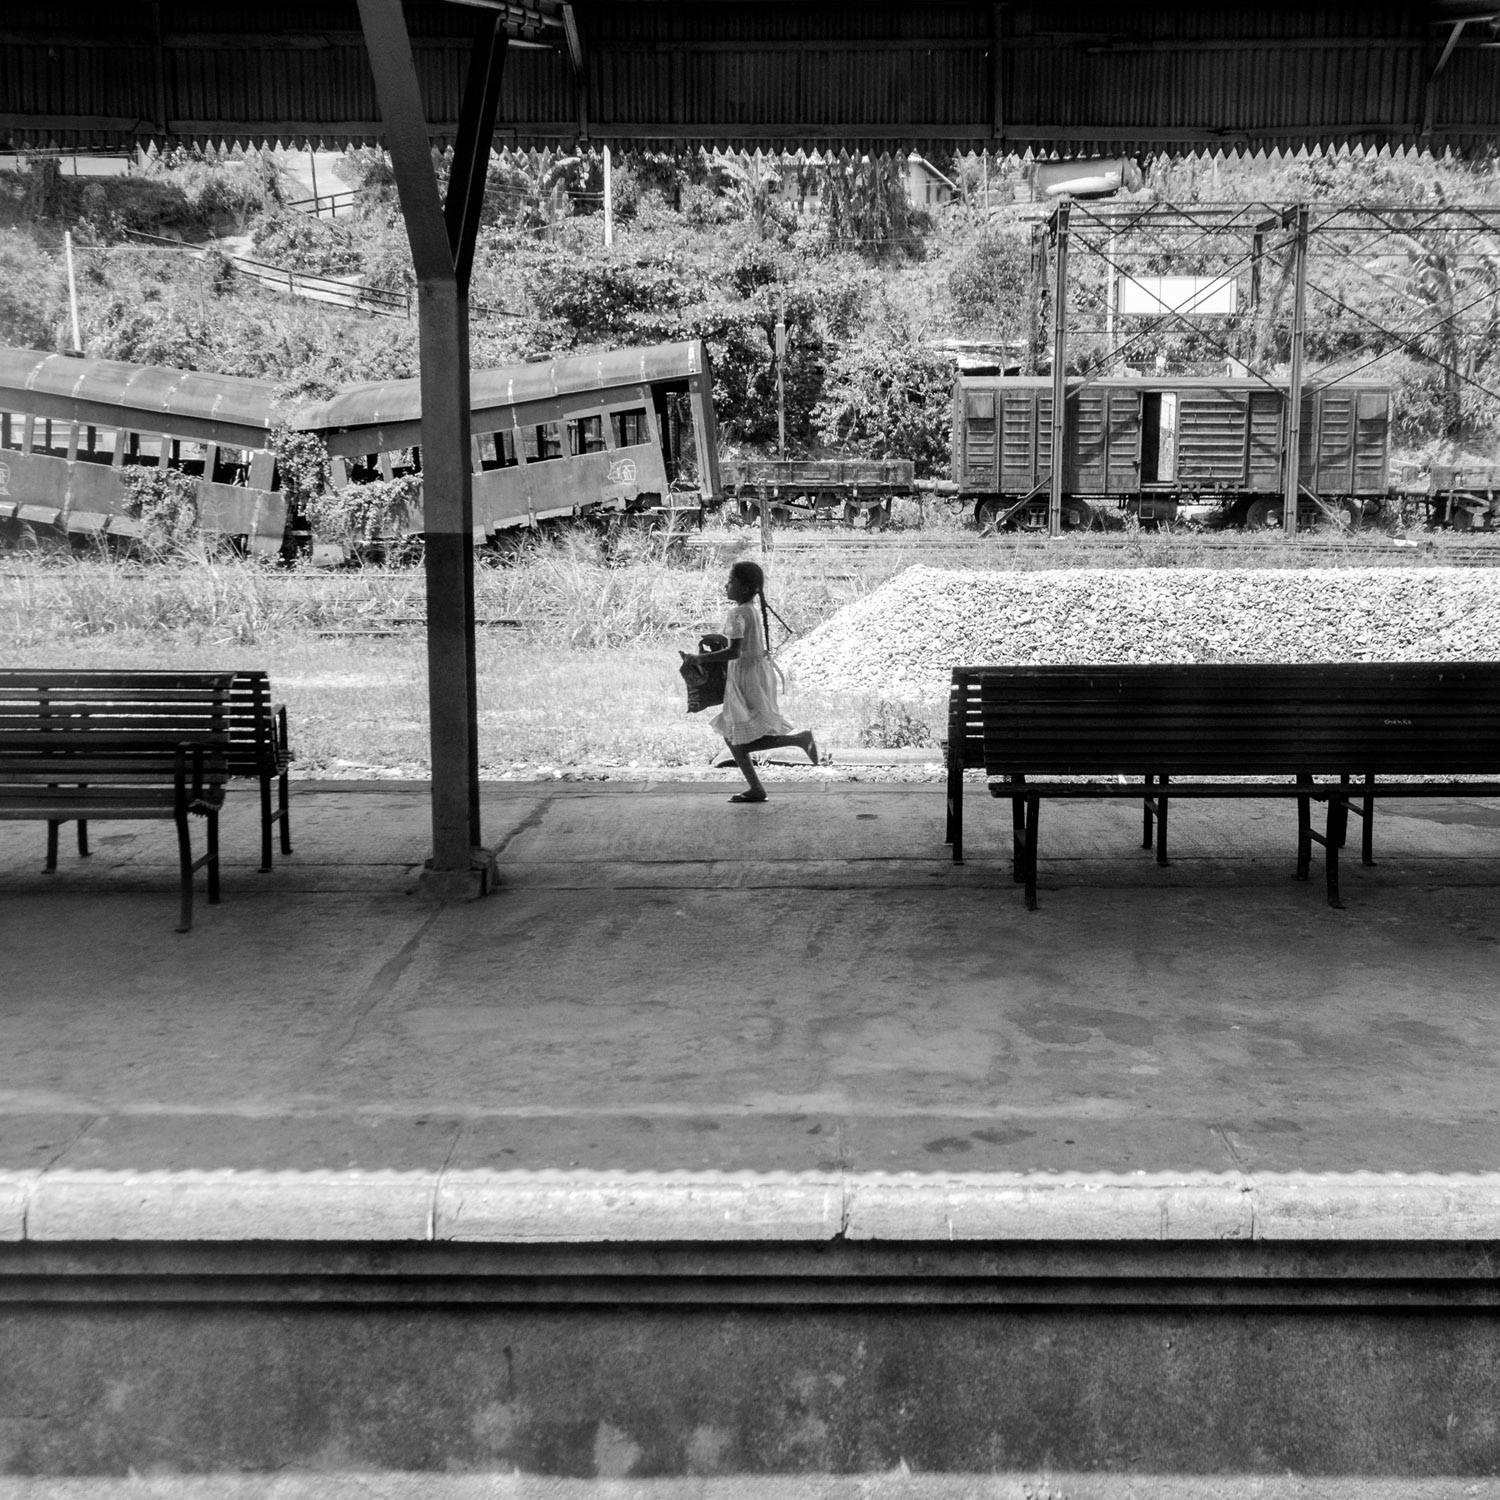 Wasim Muklashy Photography_Kandy_Sri Lanka_February 2015_Samsung NX1_18-200mm_08.jpg